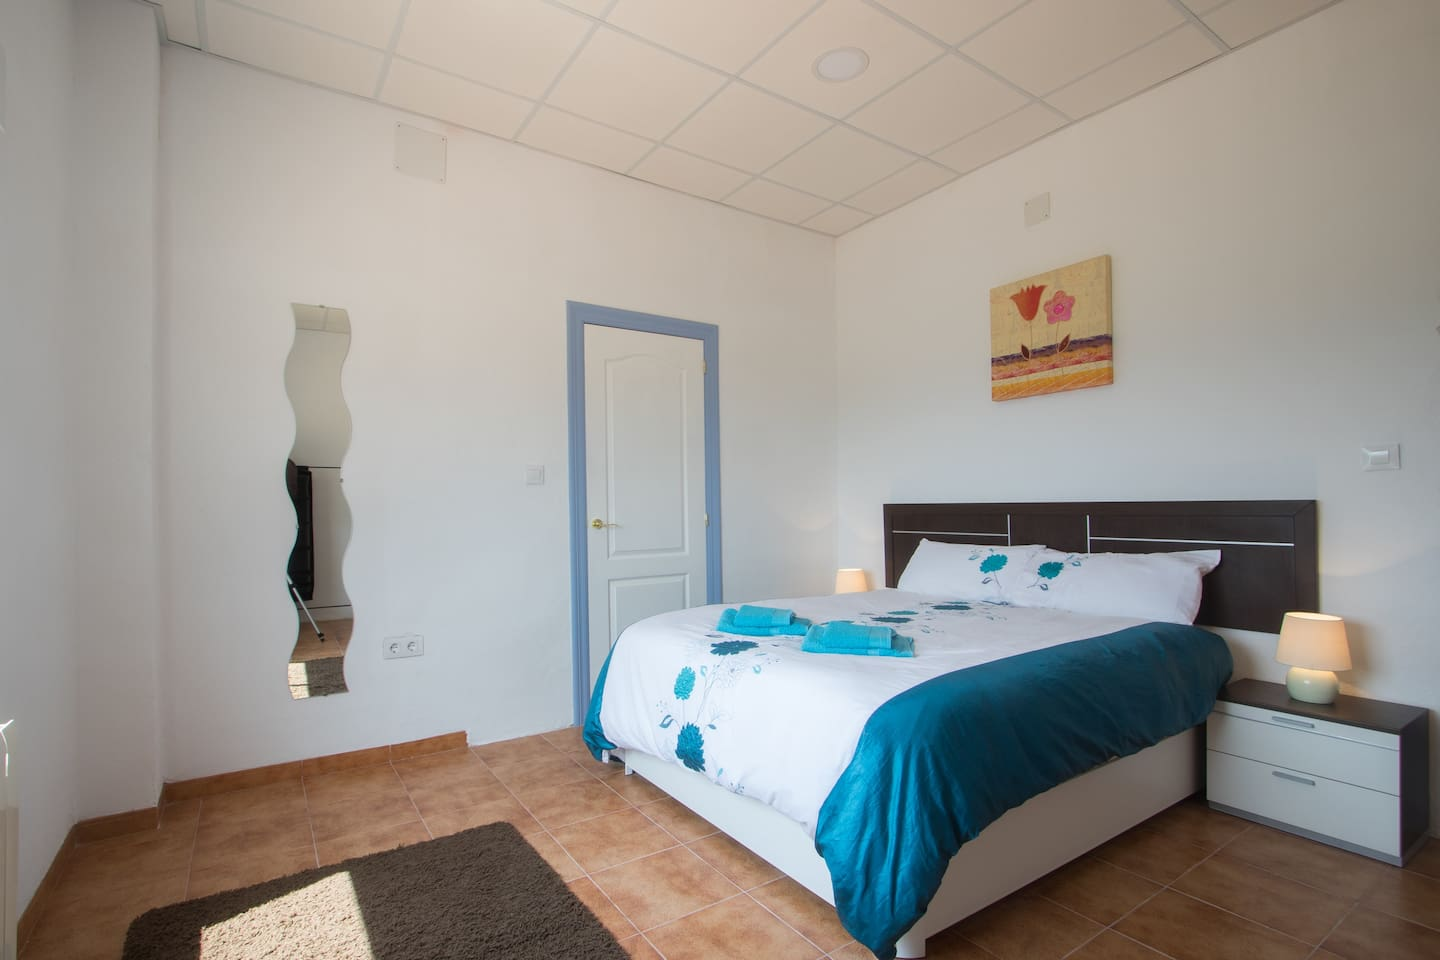 The spacious and bright room with its private, ensuite bathroom and a comfy king size bed